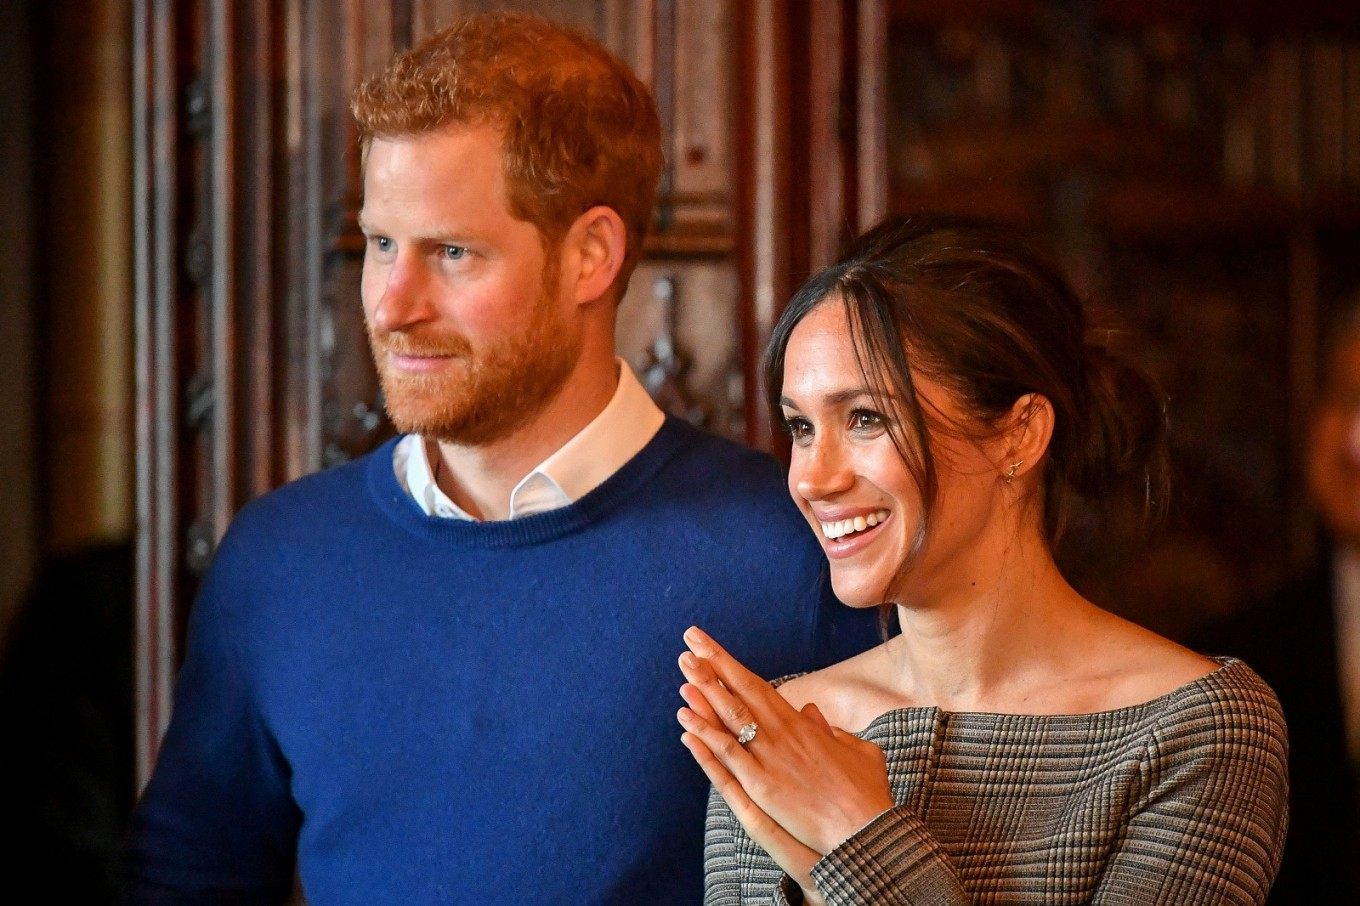 Prince Harry and Meghan Markle to stay at separate hotels on eve of wedding